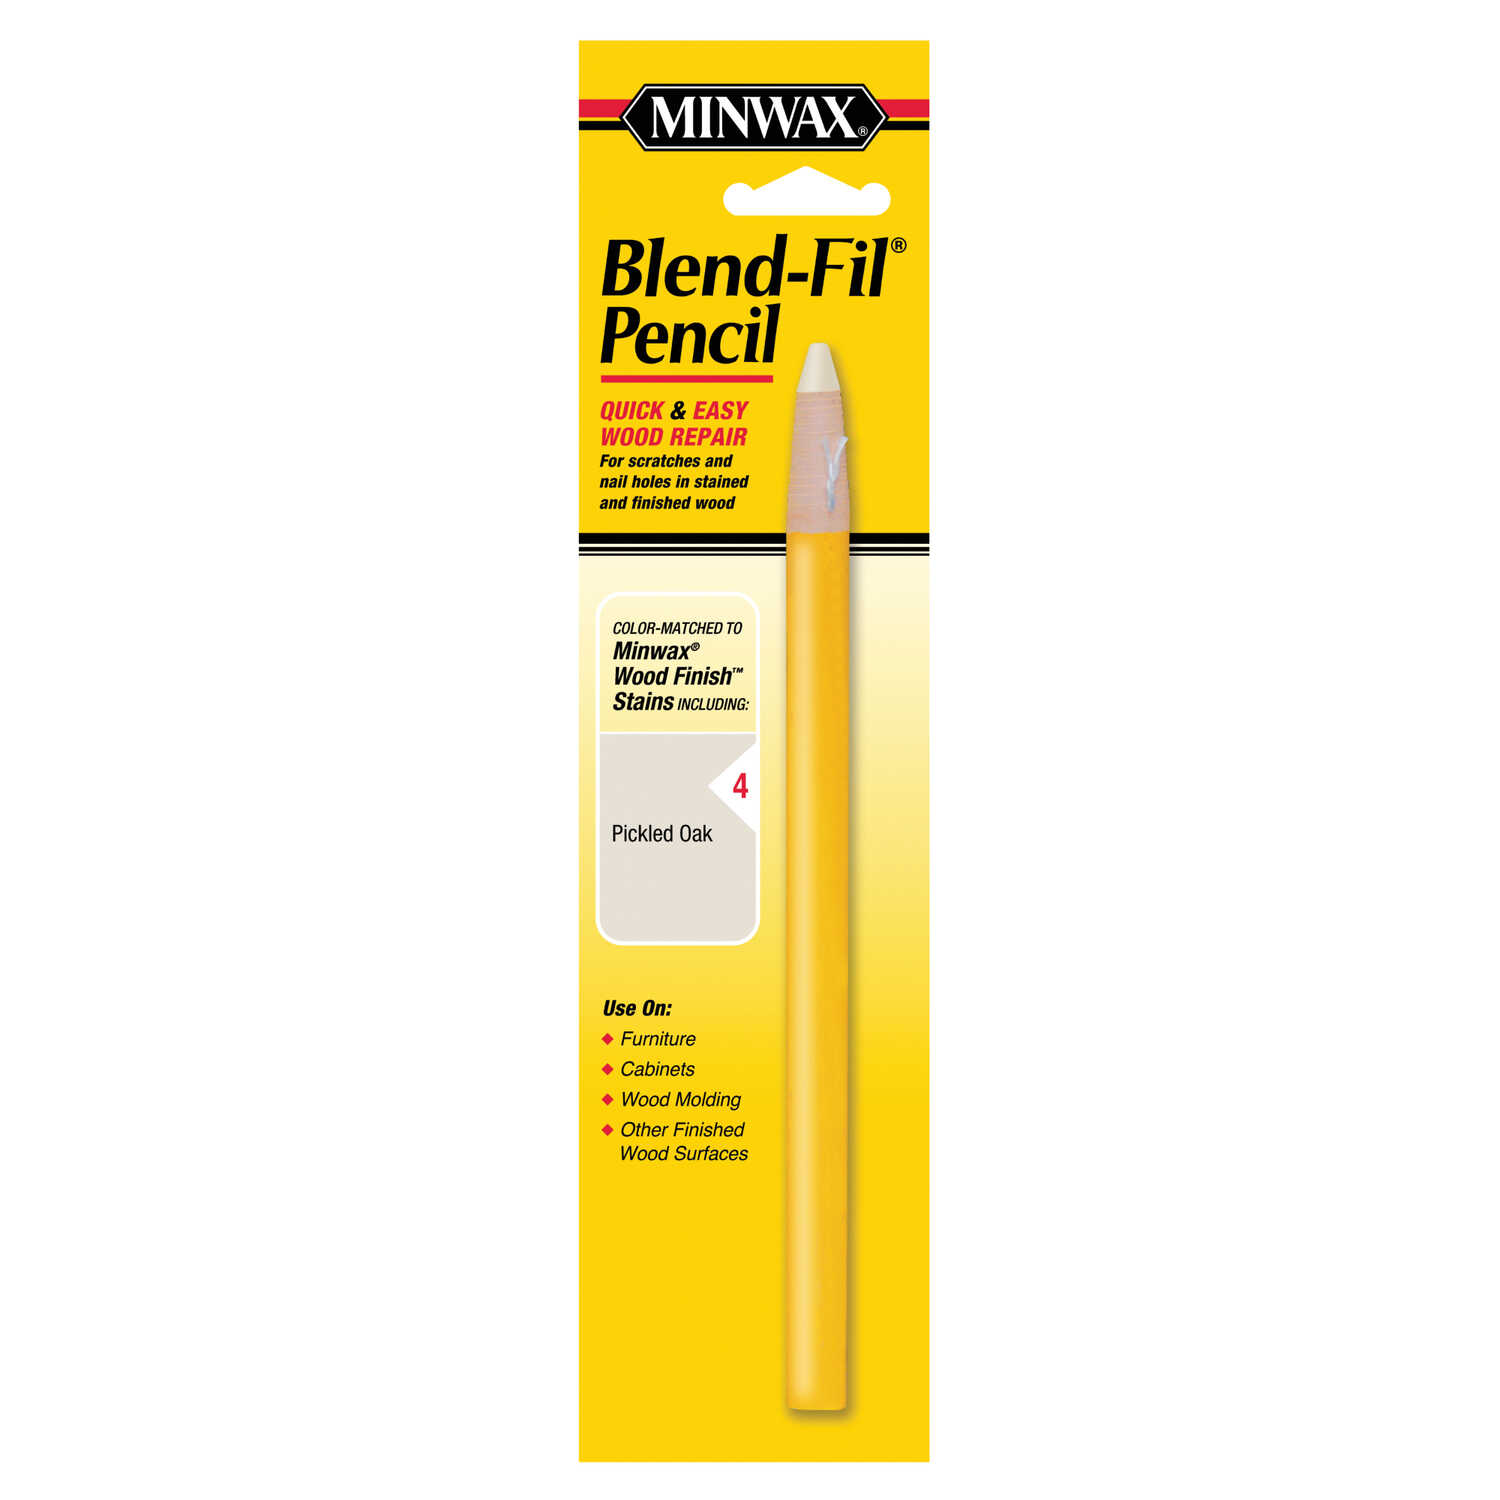 Minwax  Blend-Fil No. 4  Pickled Oak  Wood Pencil  1 oz.